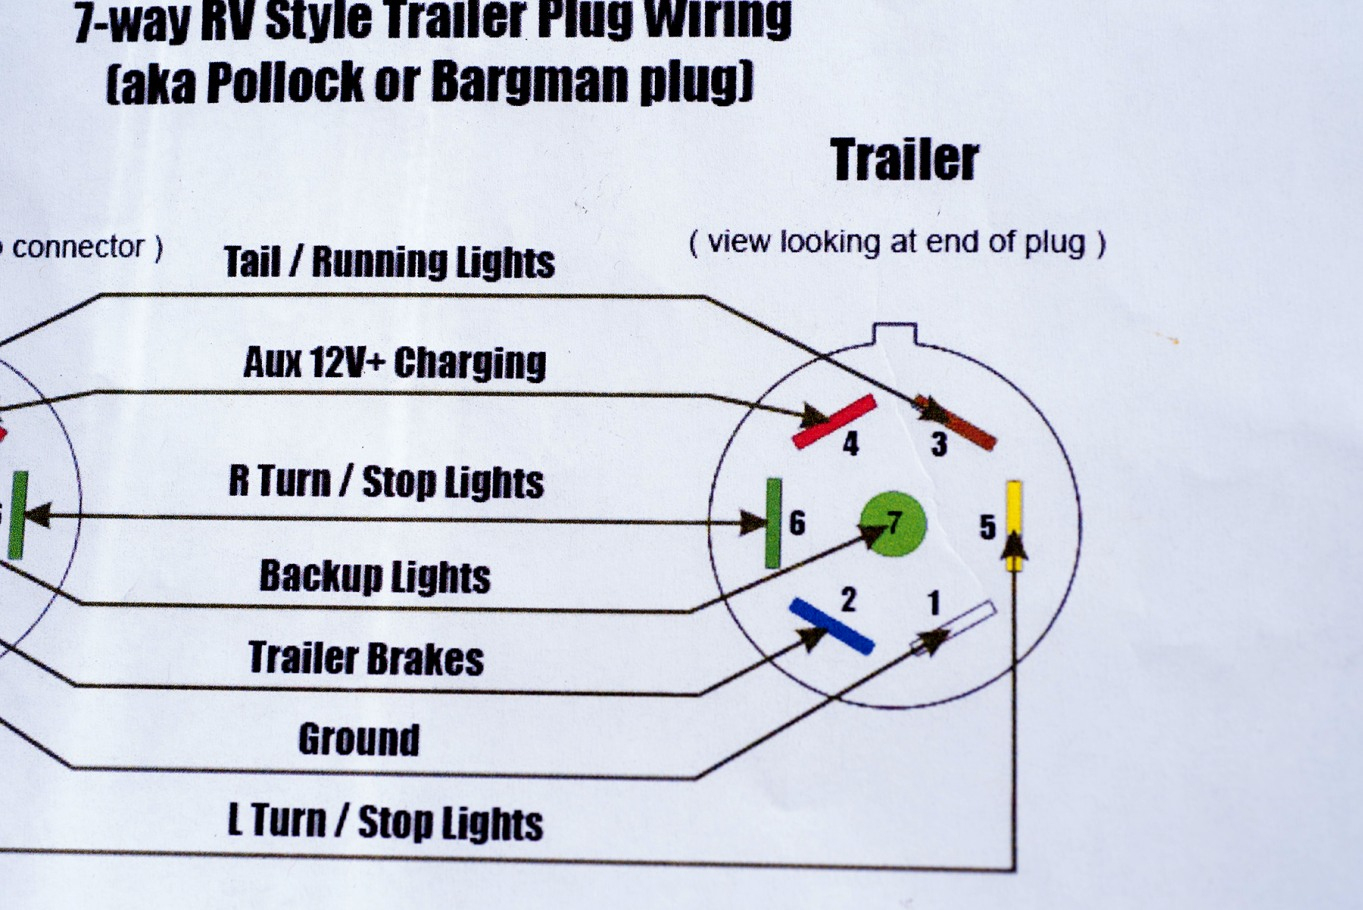 7 Round Trailer Wiring Diagram - Wiring Diagrams Hubs - 7 Round Trailer Plug Wiring Diagram